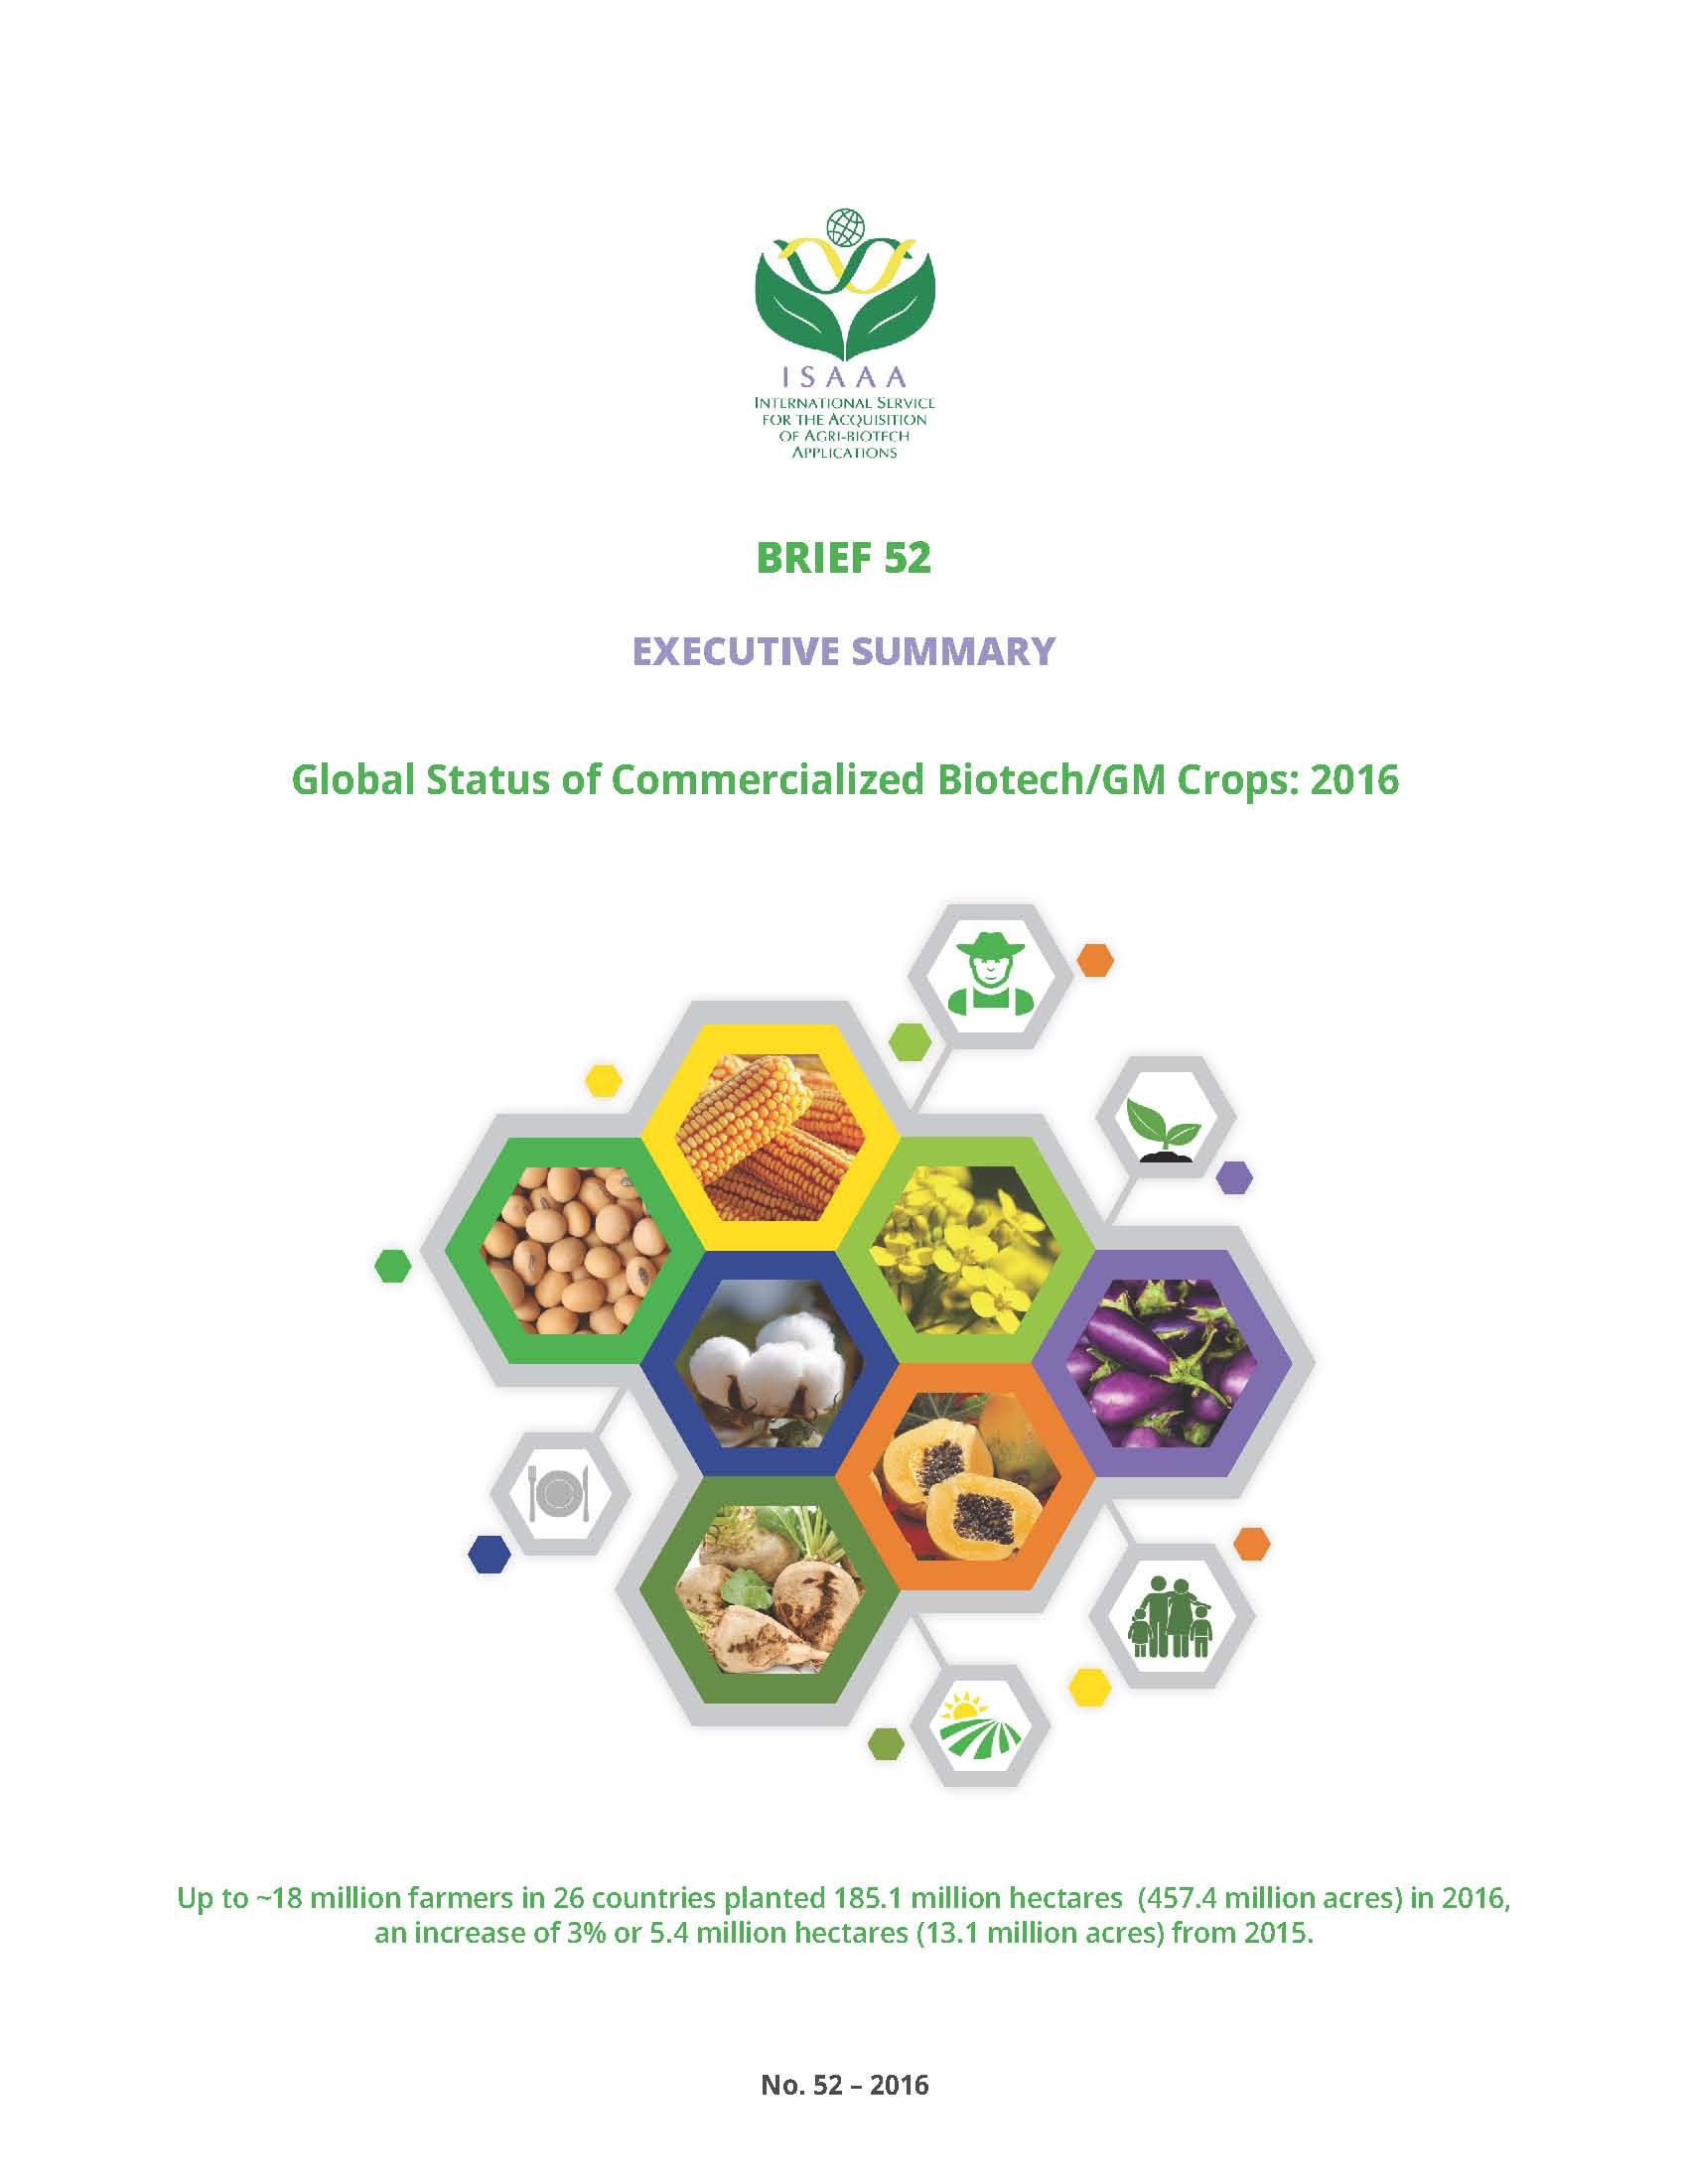 Executive Summary: Global Status of Commercialized Biotech/GM Crops in 2016